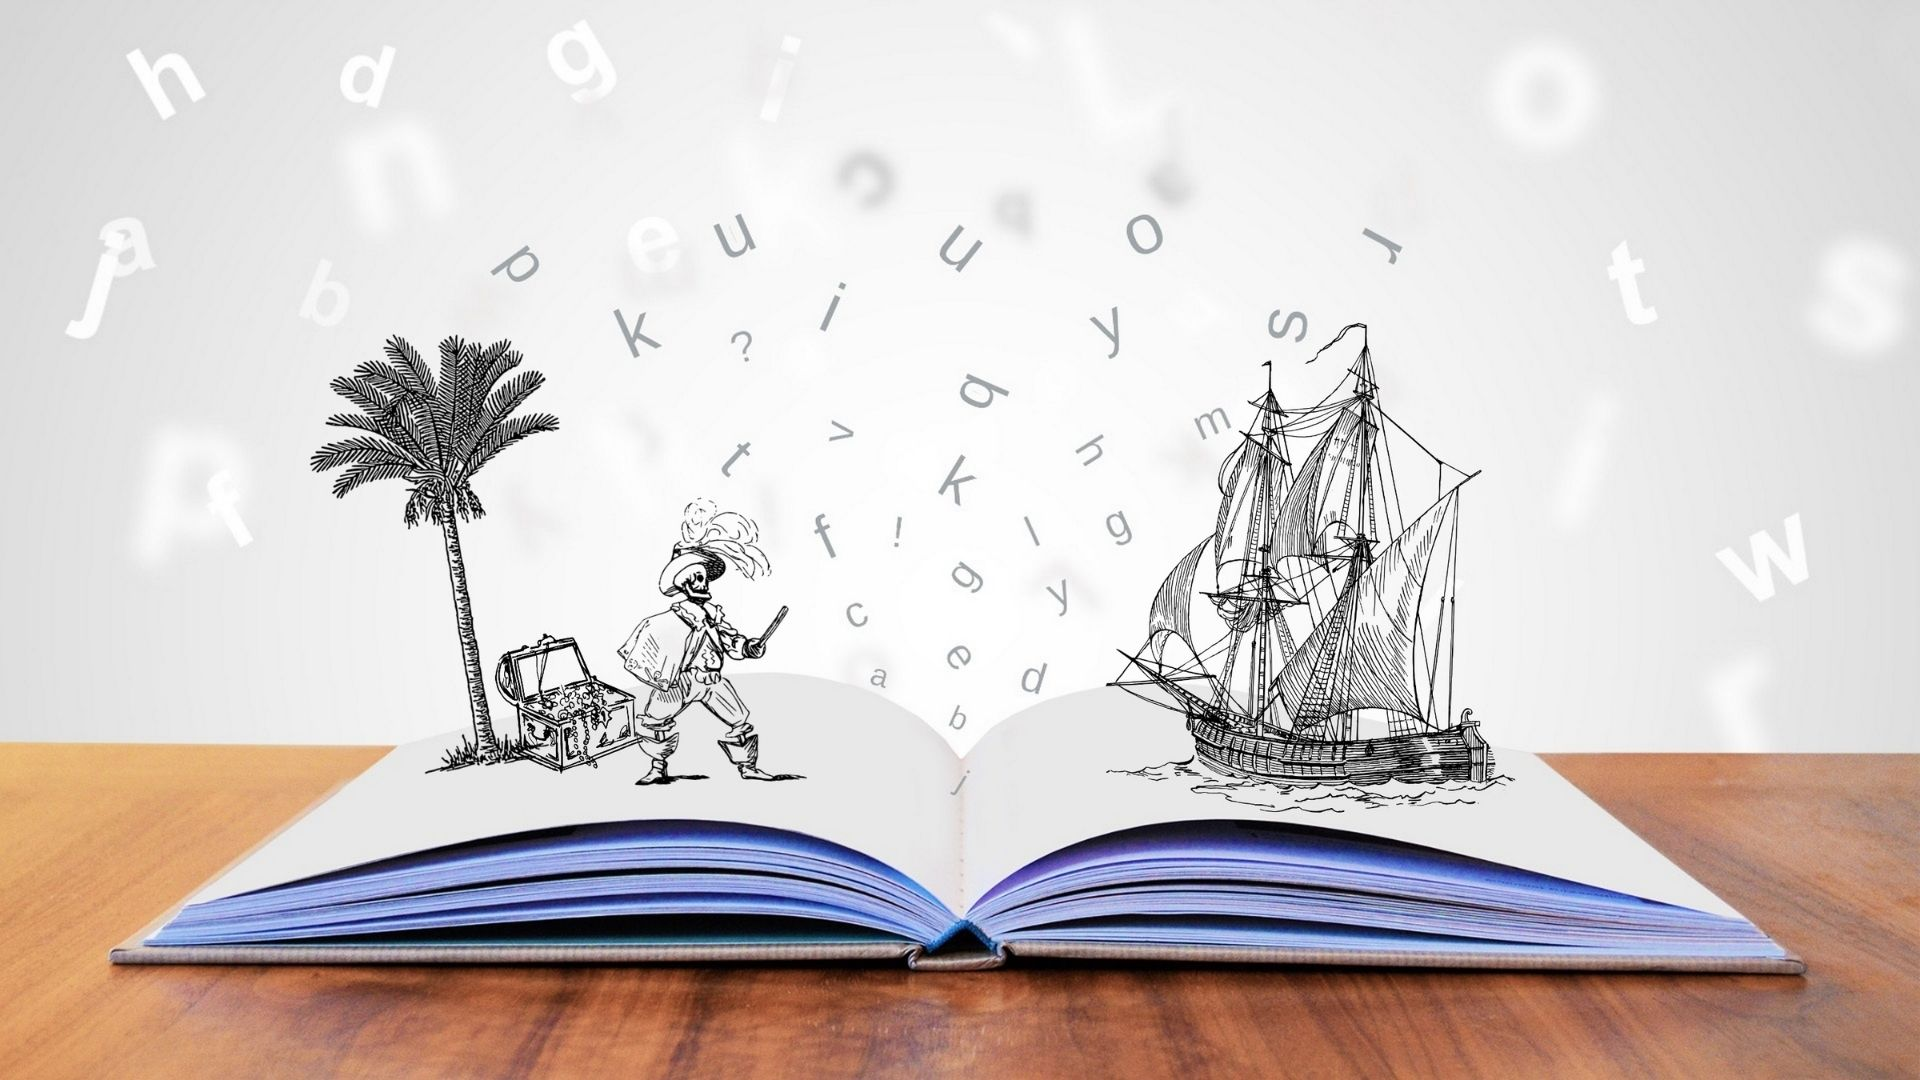 Title image - How creative storytelling can increase user interest and retention